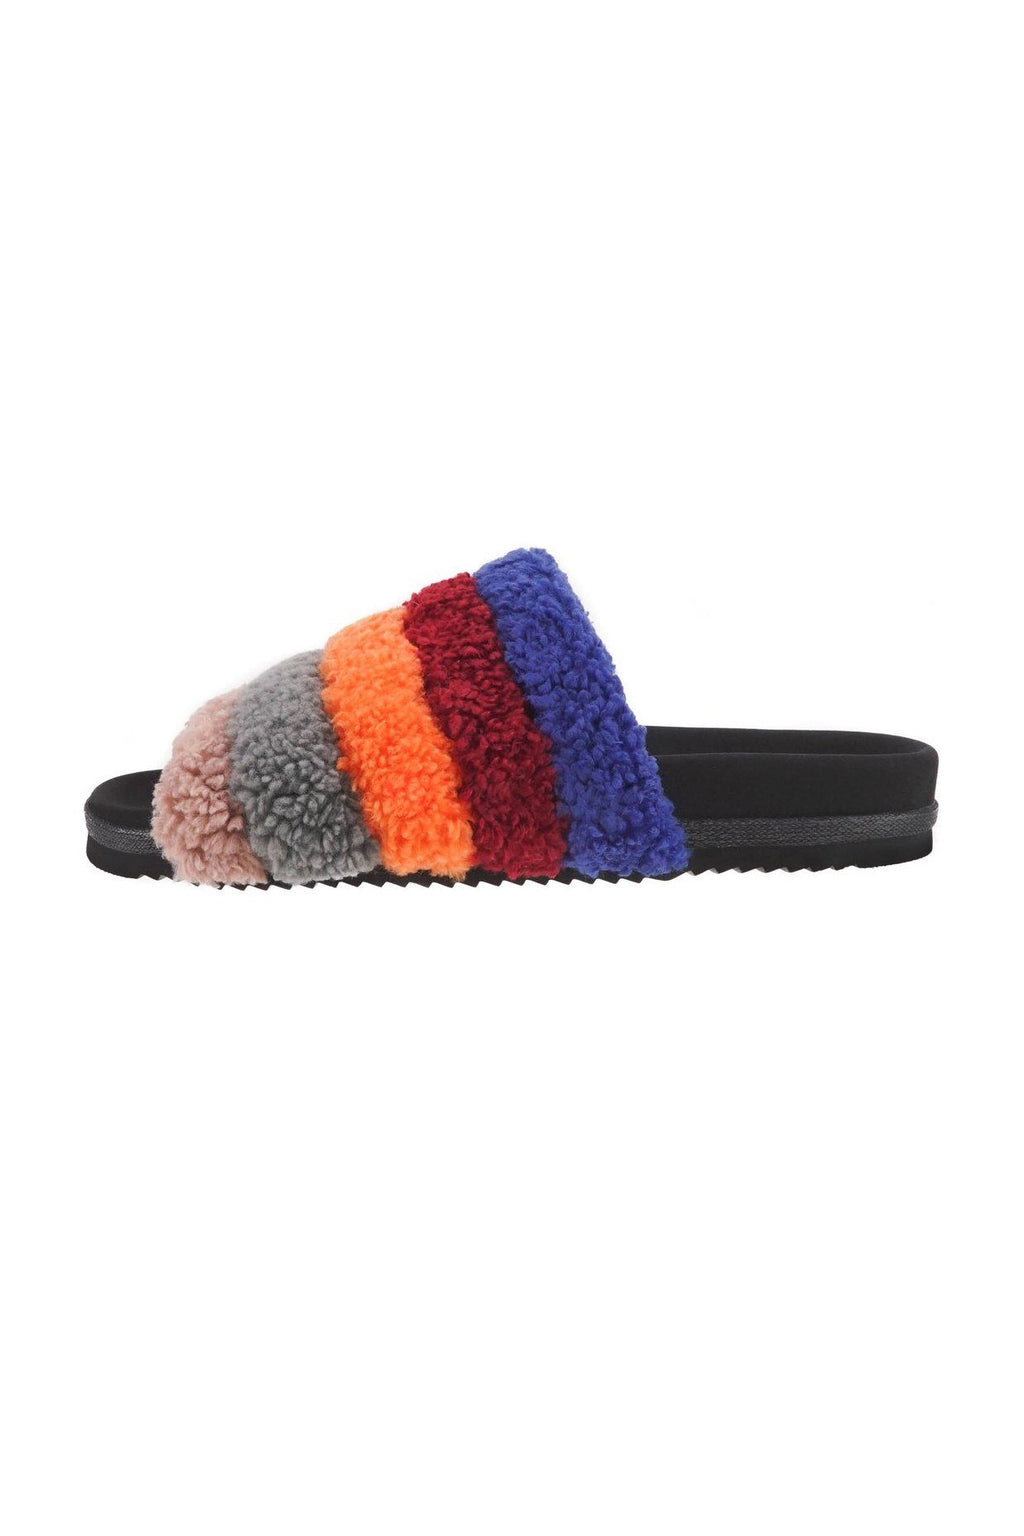 ROAM | Fuzzy Rainbow Slide - Brite Pillar